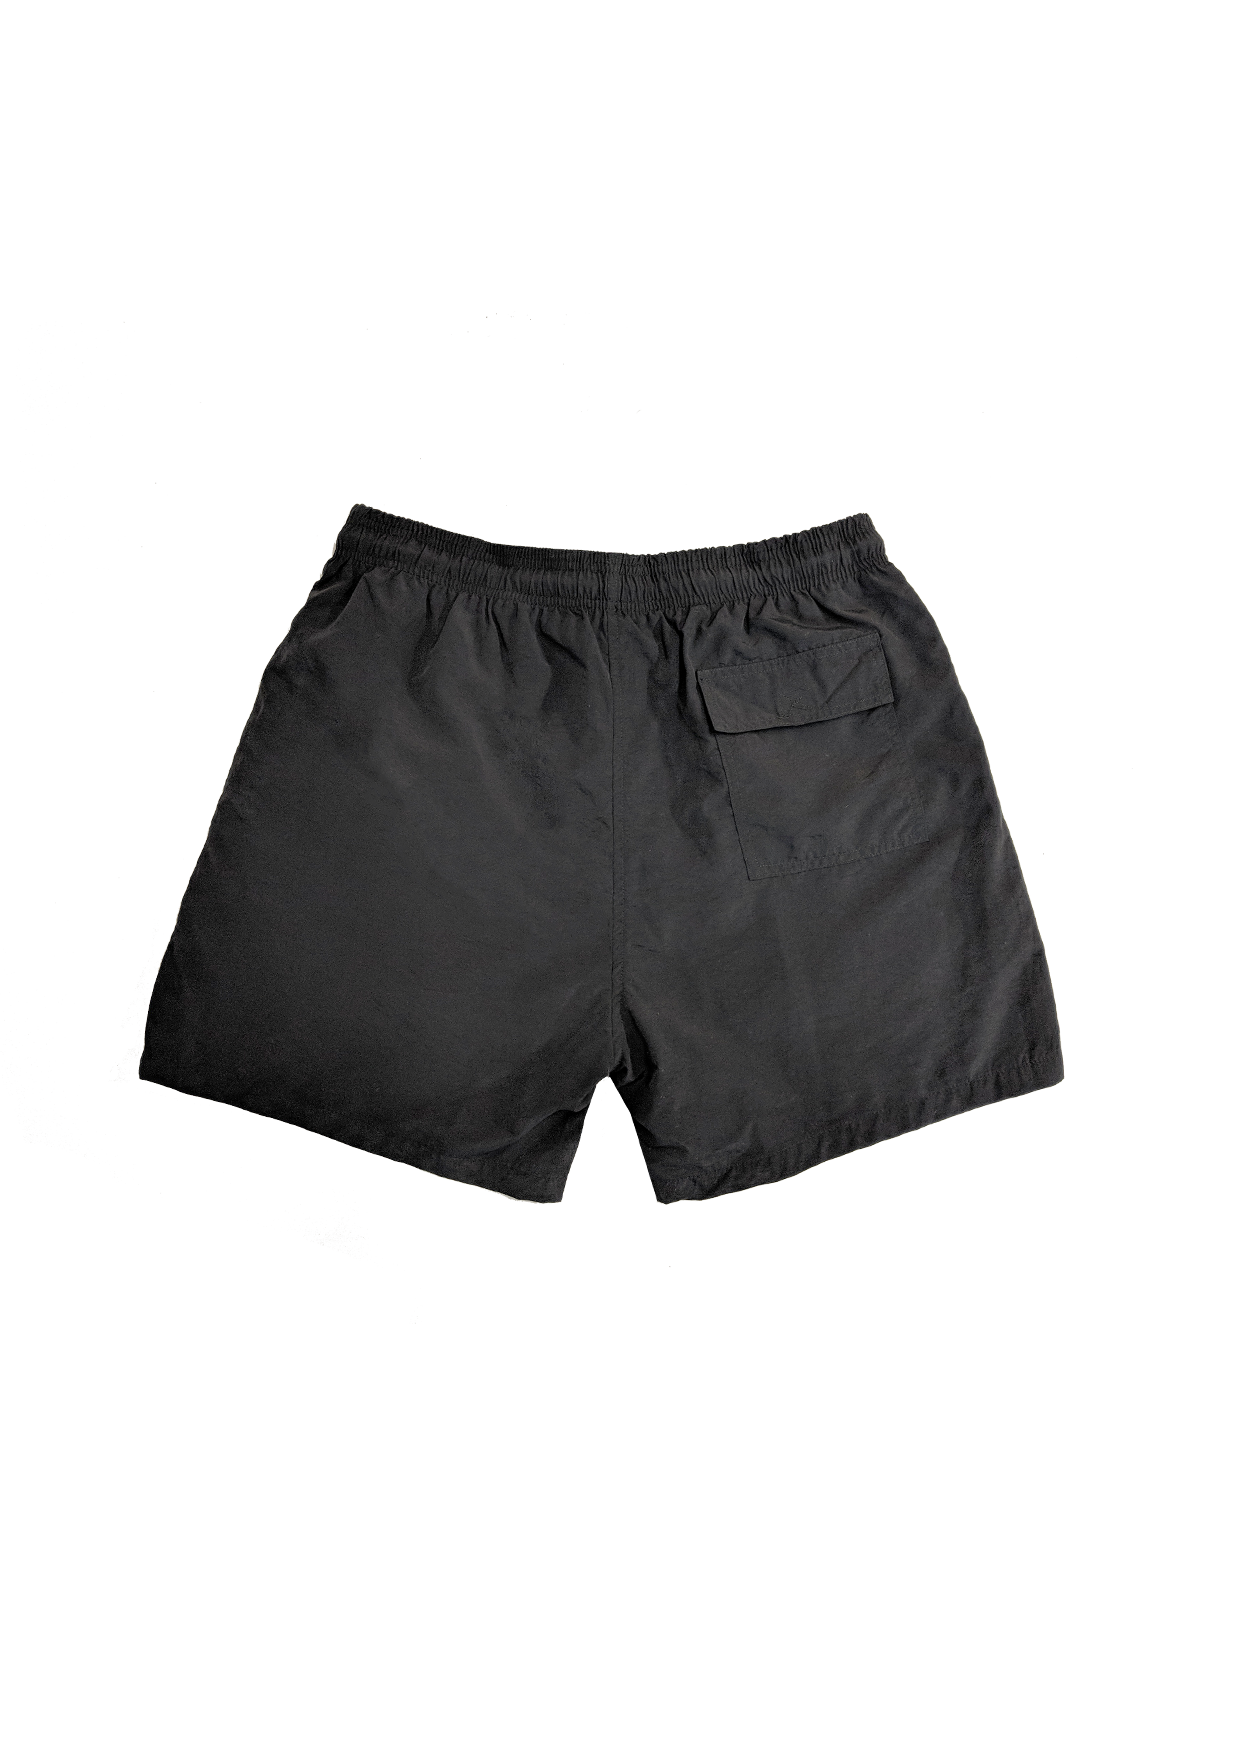 FWD track Shorts - Black / Orange